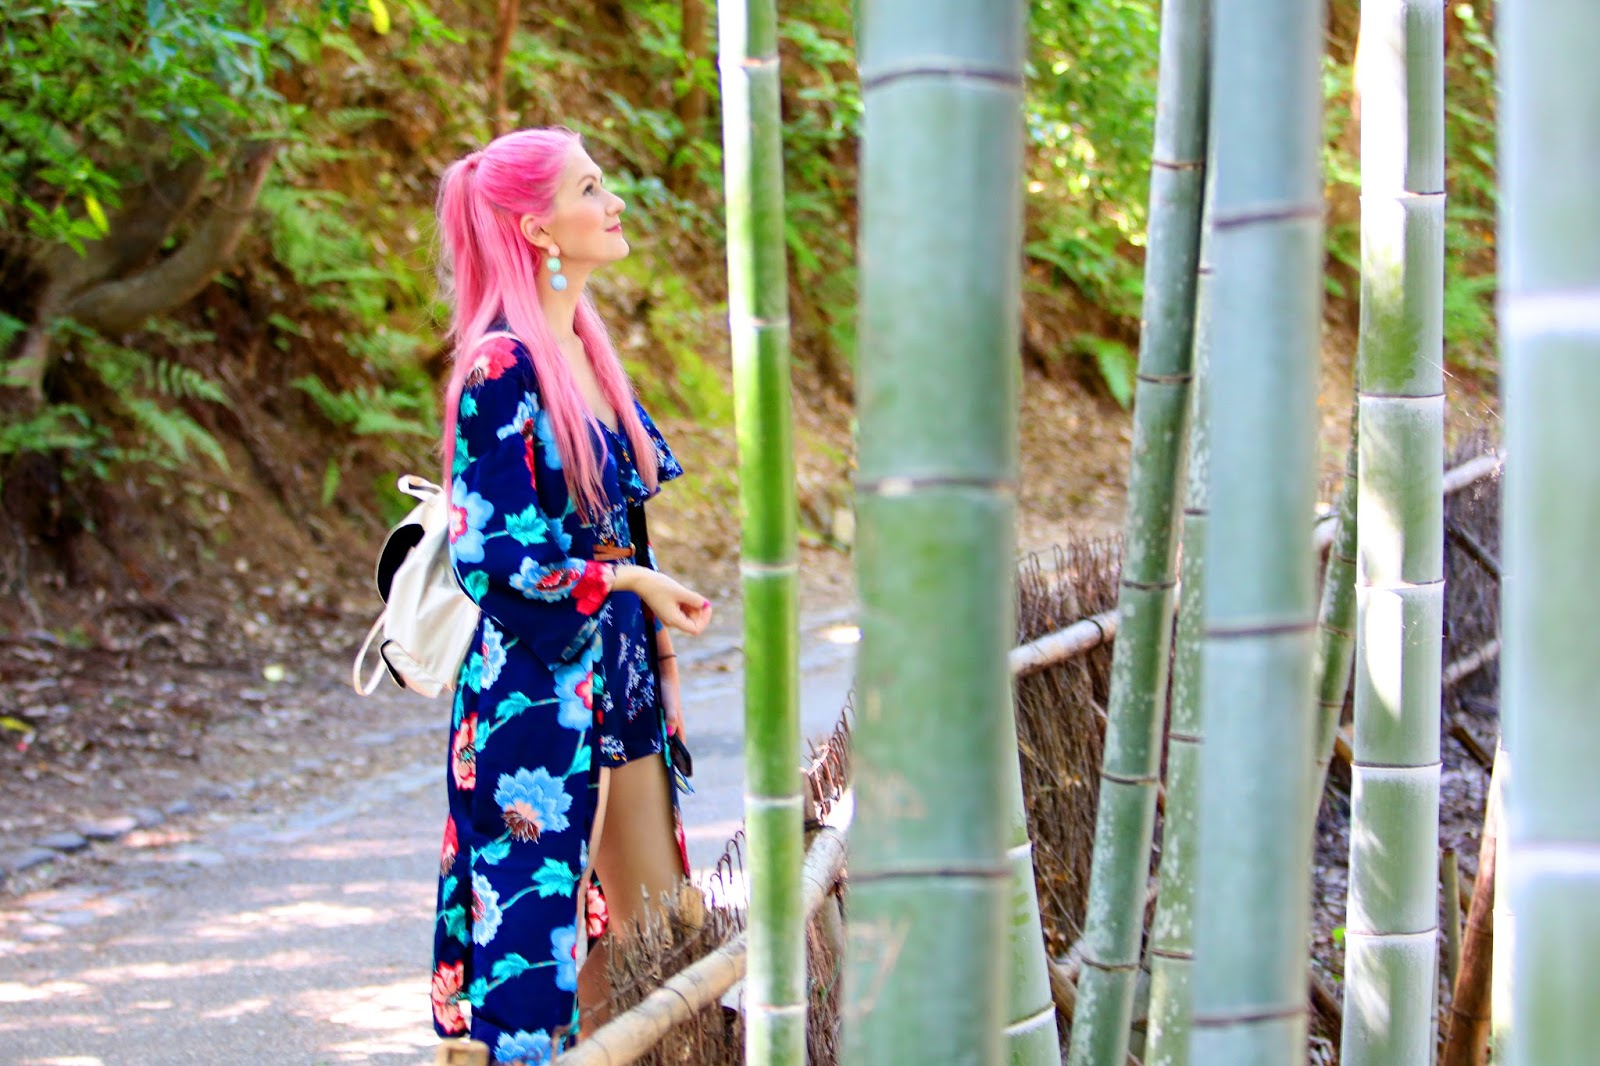 Vlog of the beautiful Bamboo forest in Arashiyama, Japan